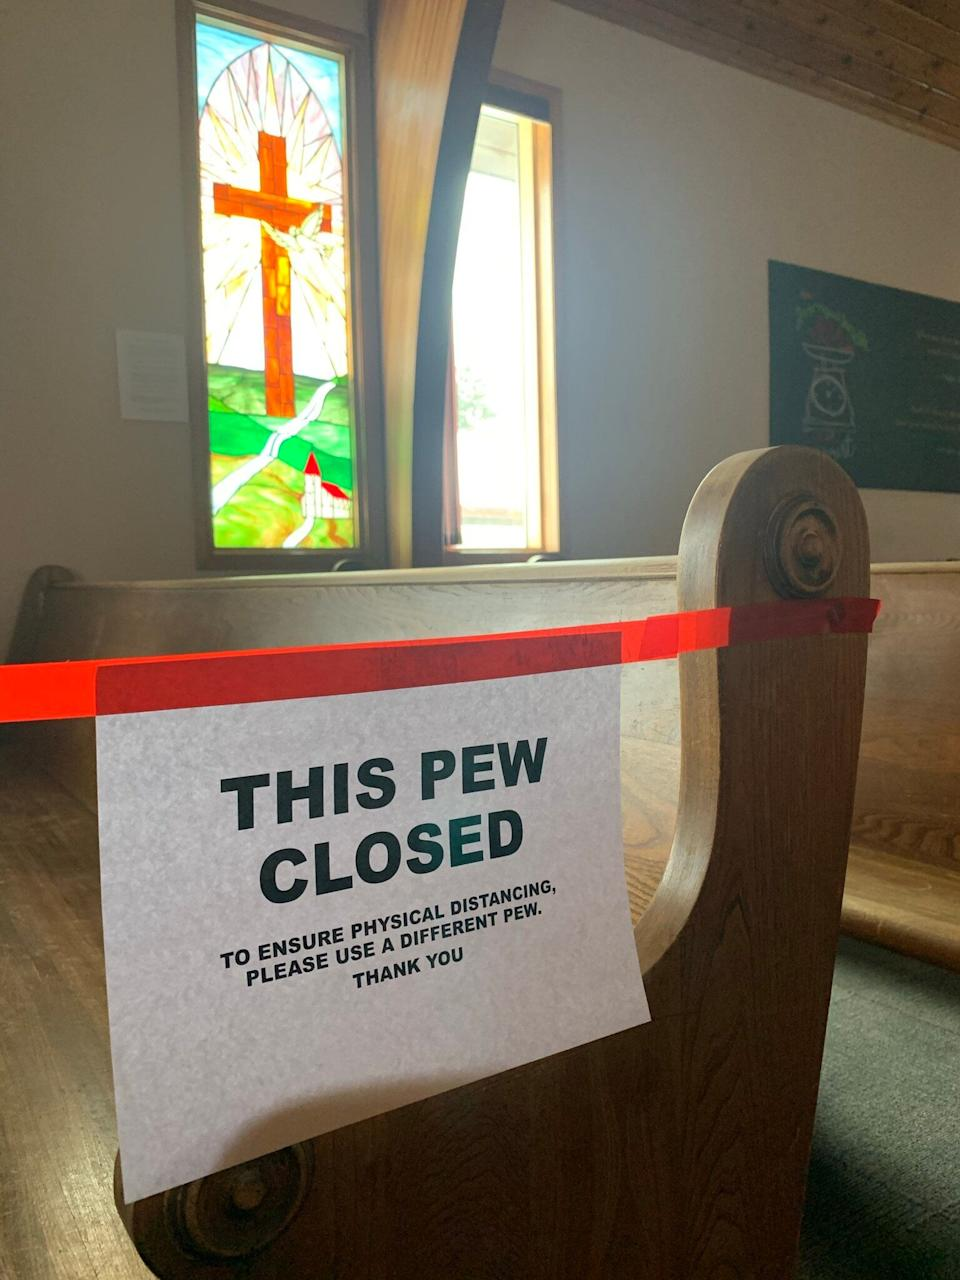 Many churches across Canada are required to limit in-person gatherings, but in some high-profile cases, churches have ignored pandemic restrictions outright. (Photo: Jonathon Shierman)